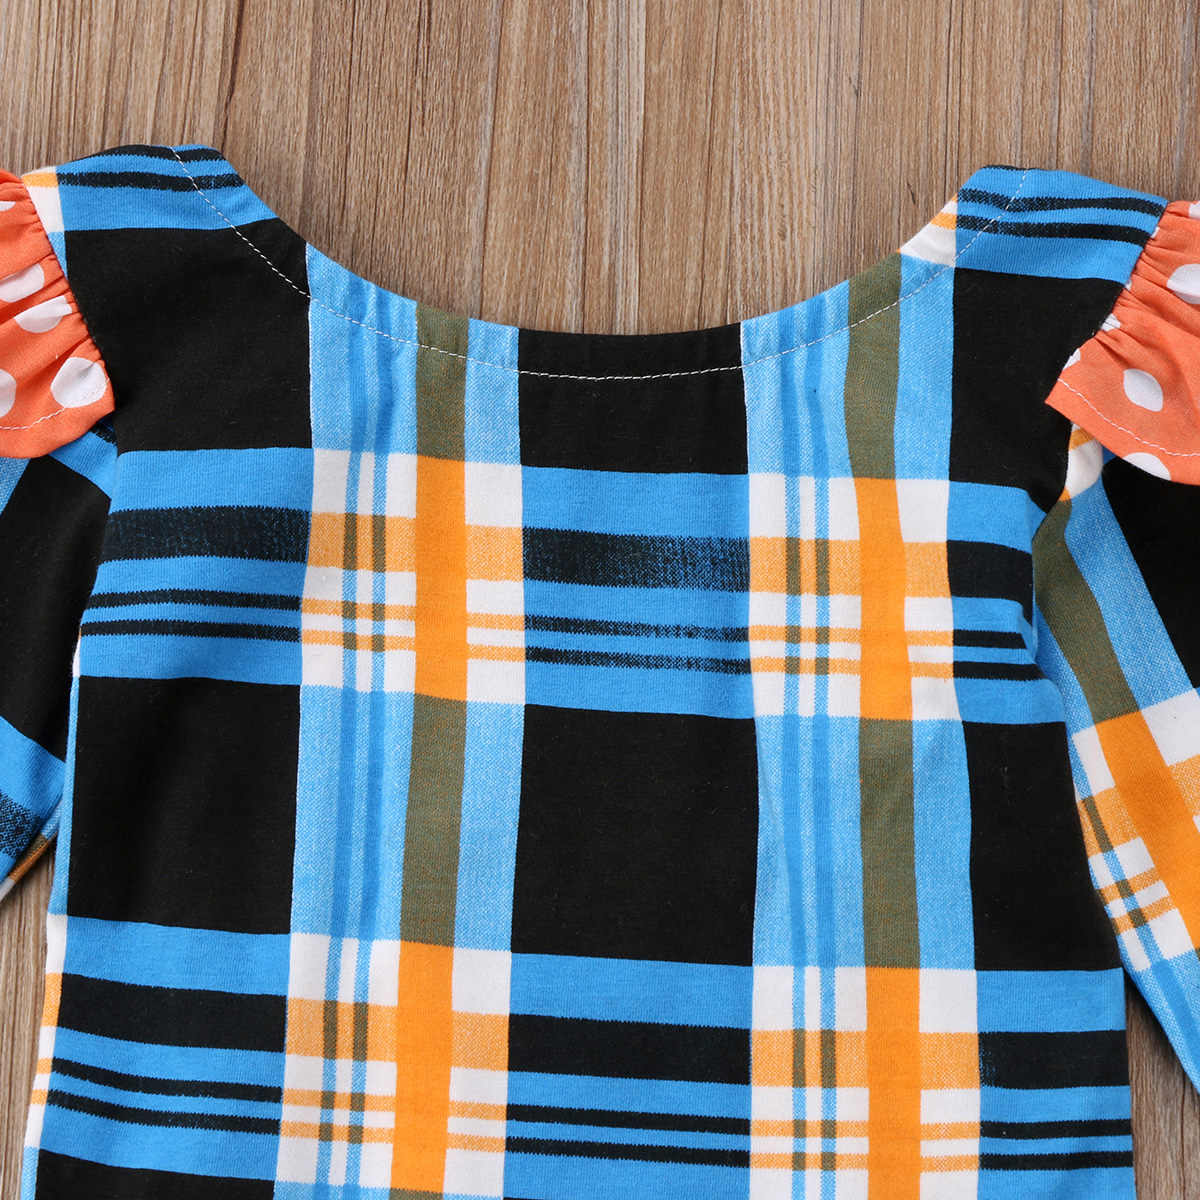 e6dee535e ... 2018 Cute Newborn Baby Tartan Plaid Romper Flying Sleeves Jumpsuit  Denim Blue Skirt Outfits Ruffle Clothes ...